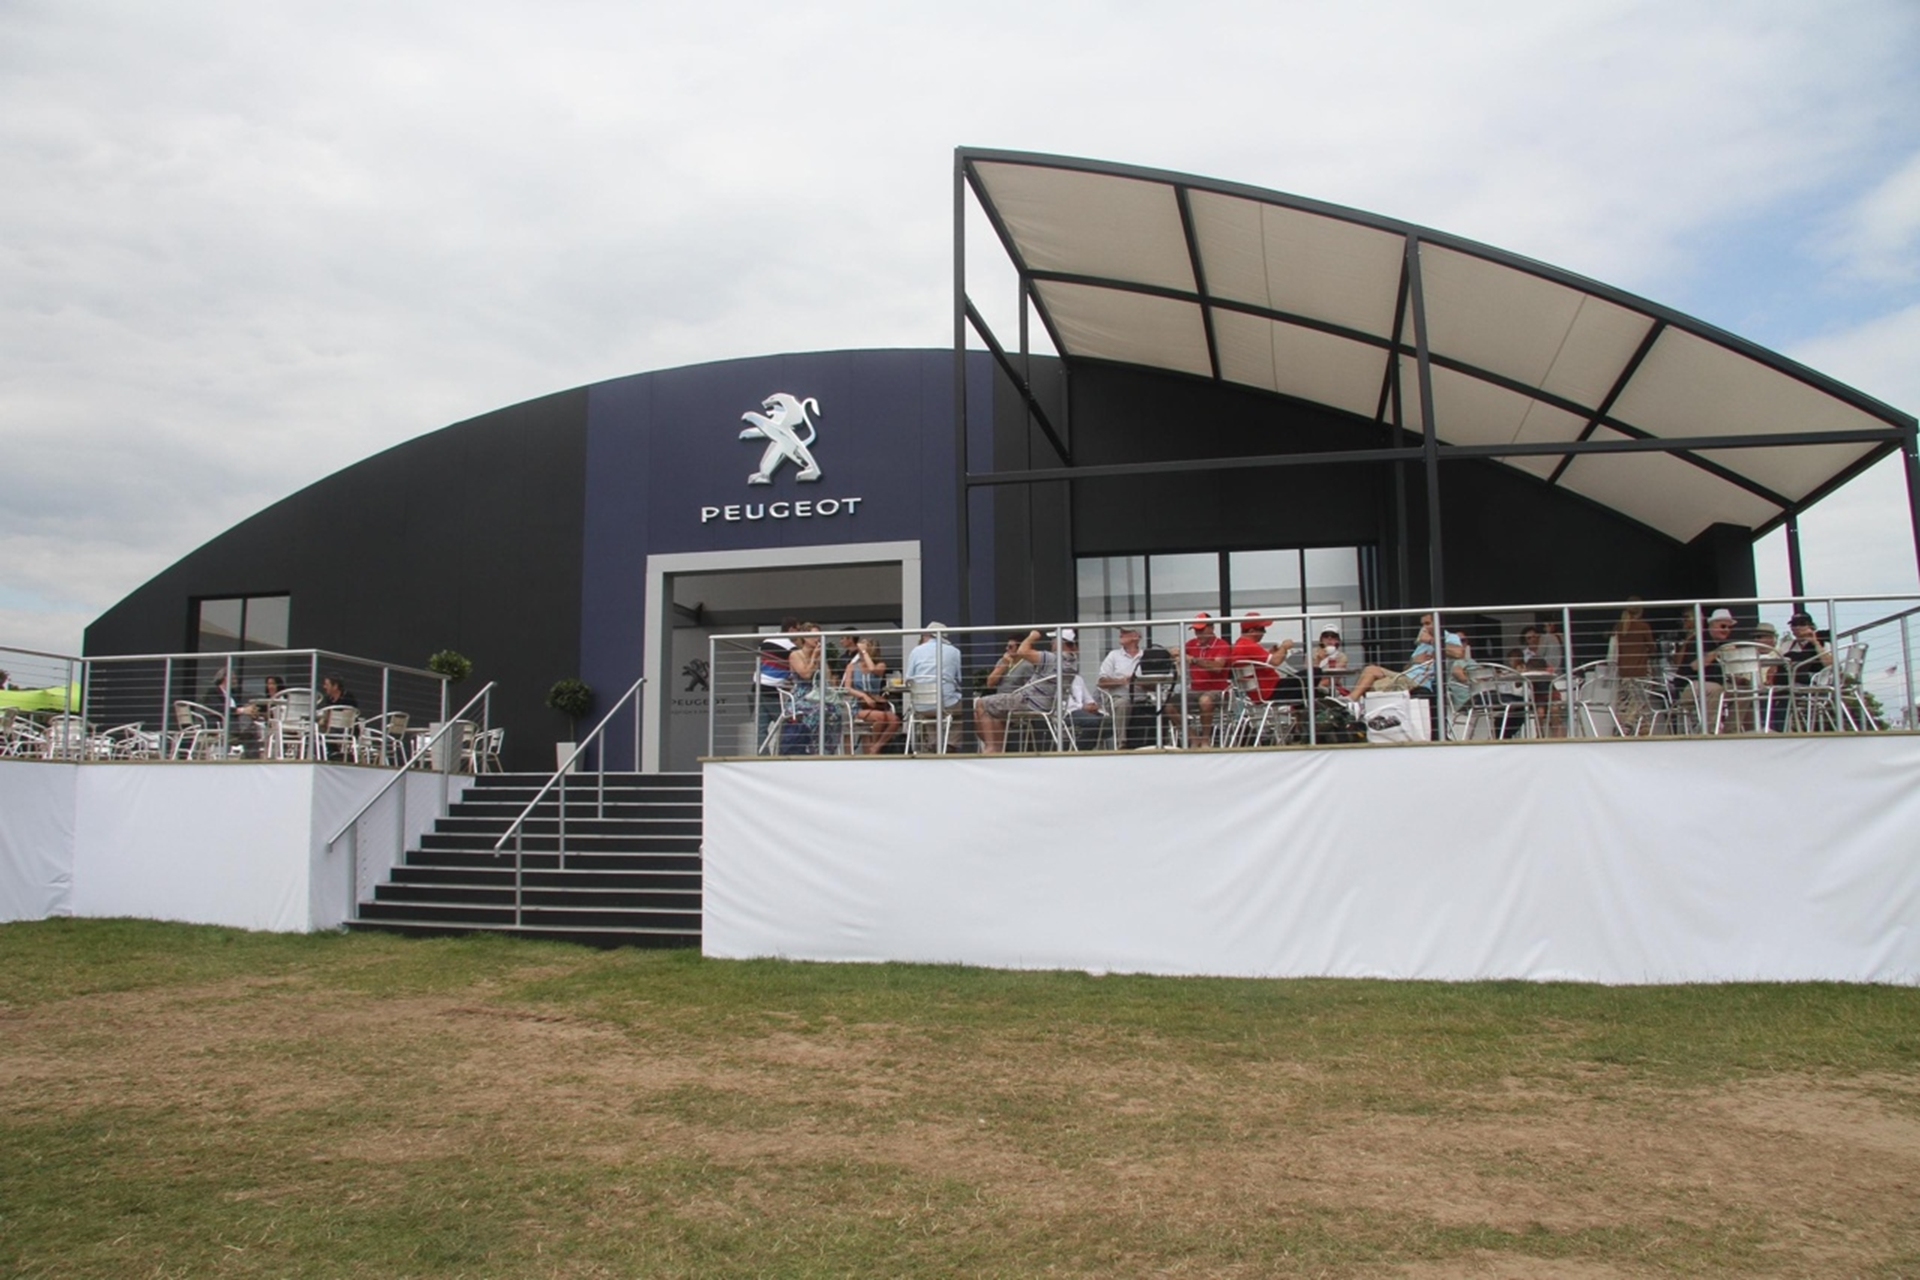 Peugeot Stand Goodwood Festival